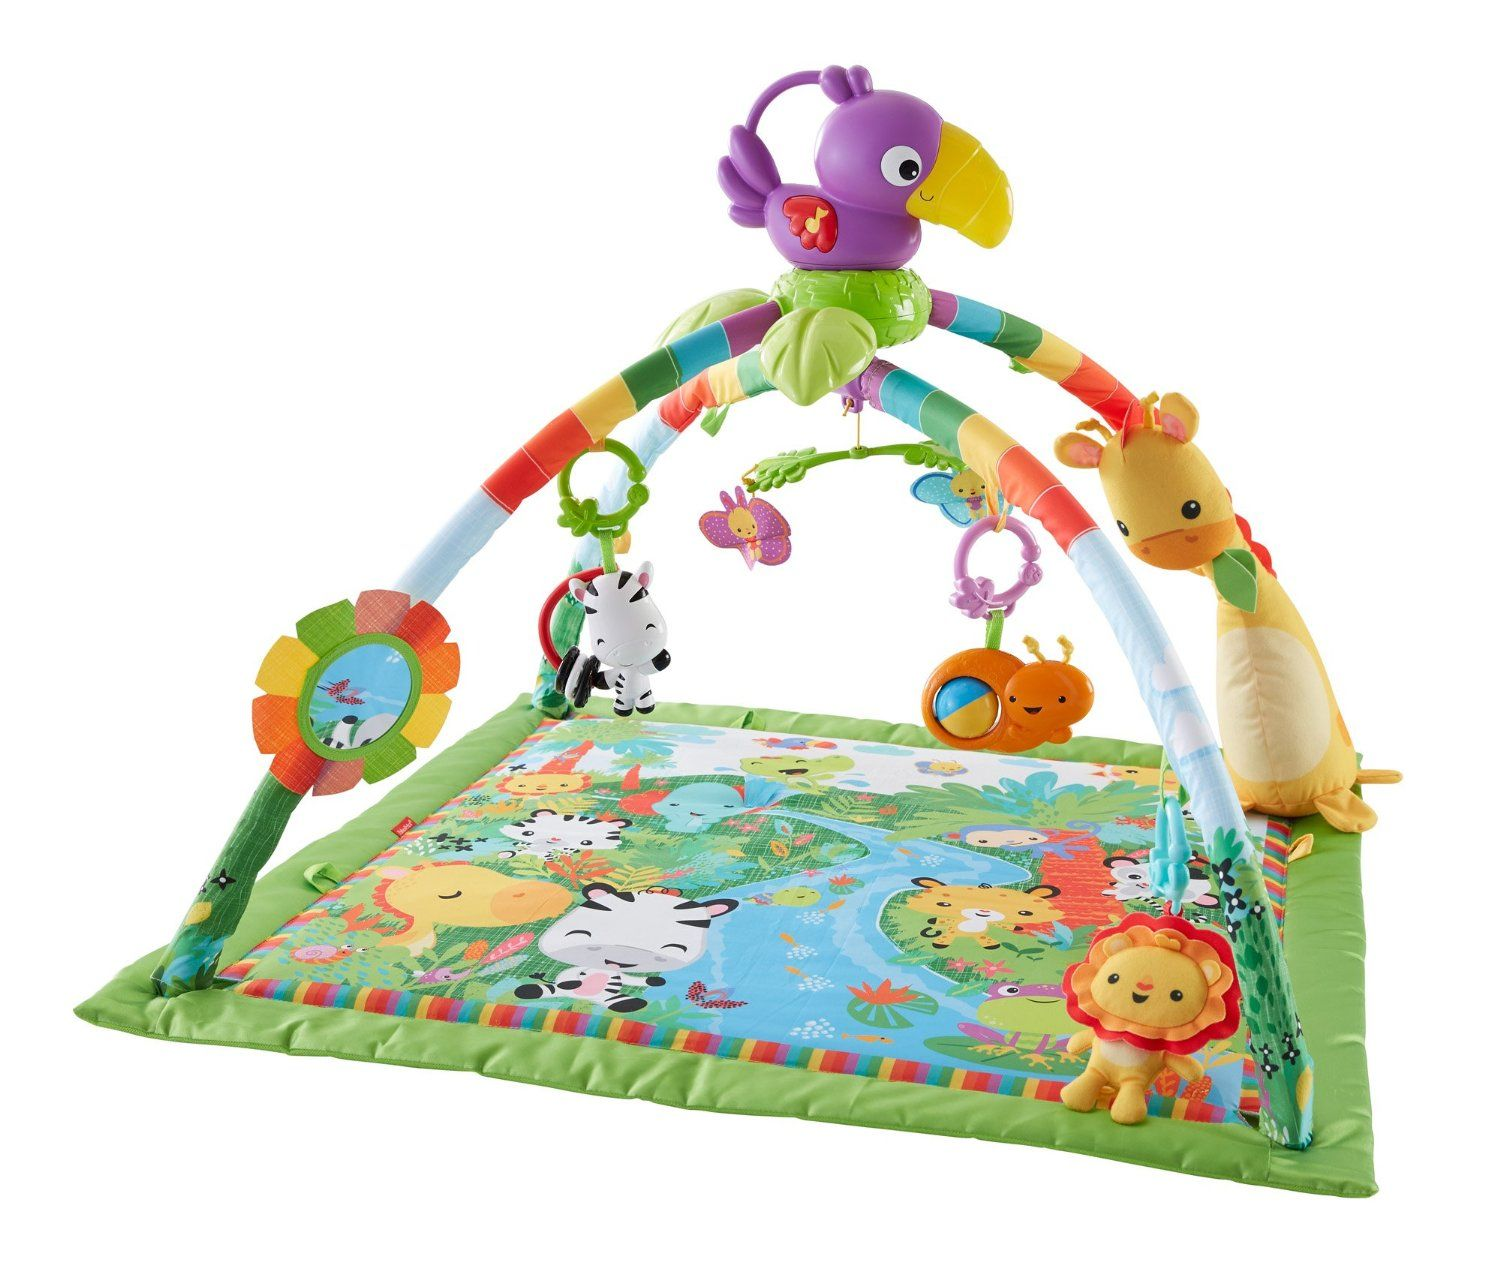 Amazon Com Fisher Price Music And Lights Deluxe Gym Rainforest Baby Fisher Price Fisher Price Baby Toys Rainforest Music